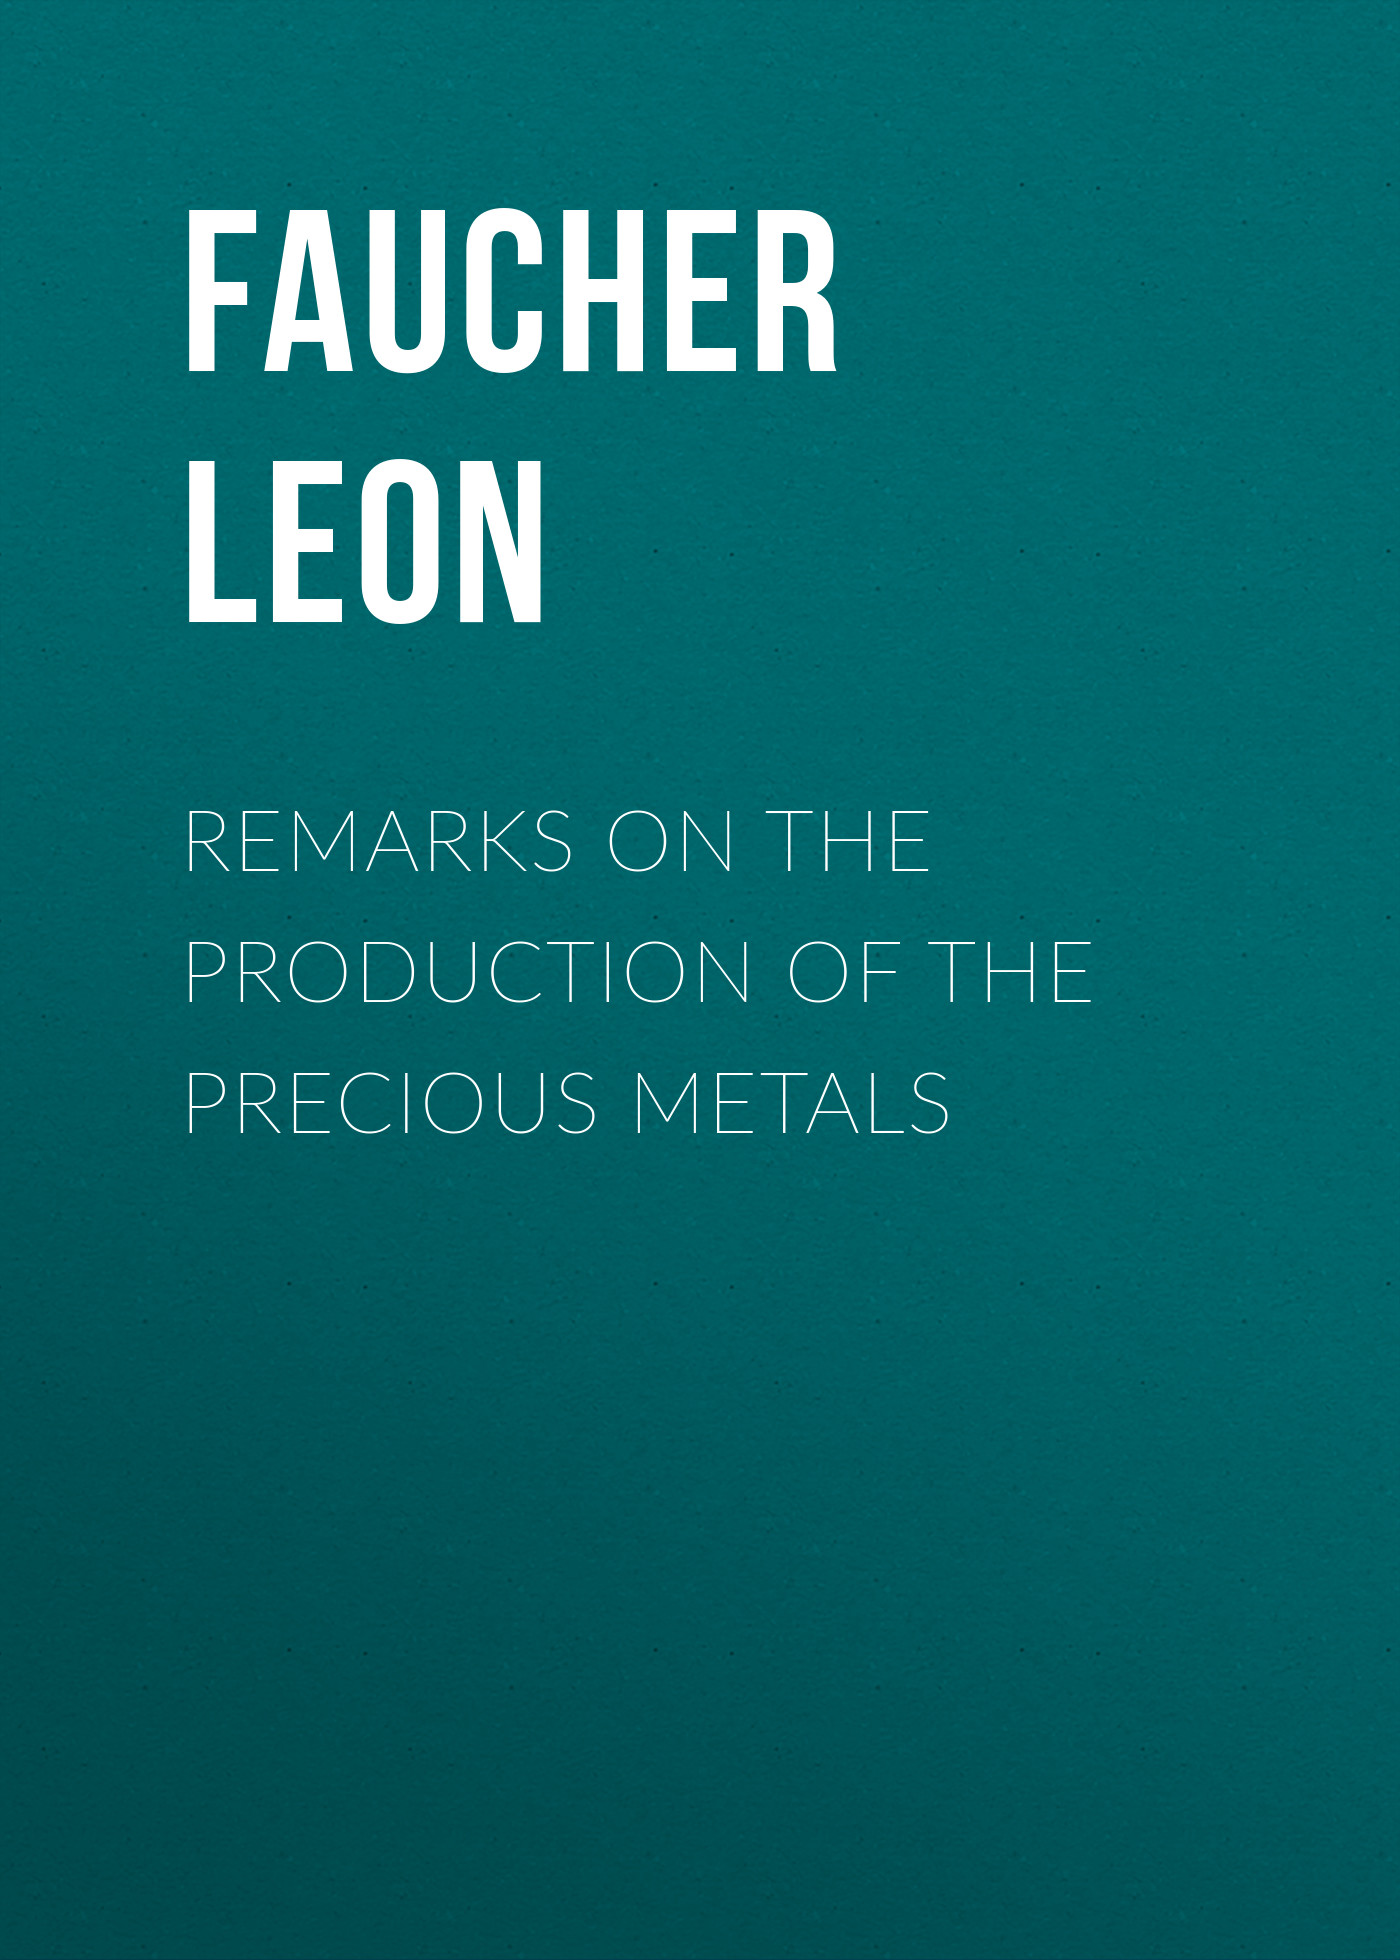 Faucher Leon Remarks on the production of the precious metals paul mladjenovic precious metals investing for dummies